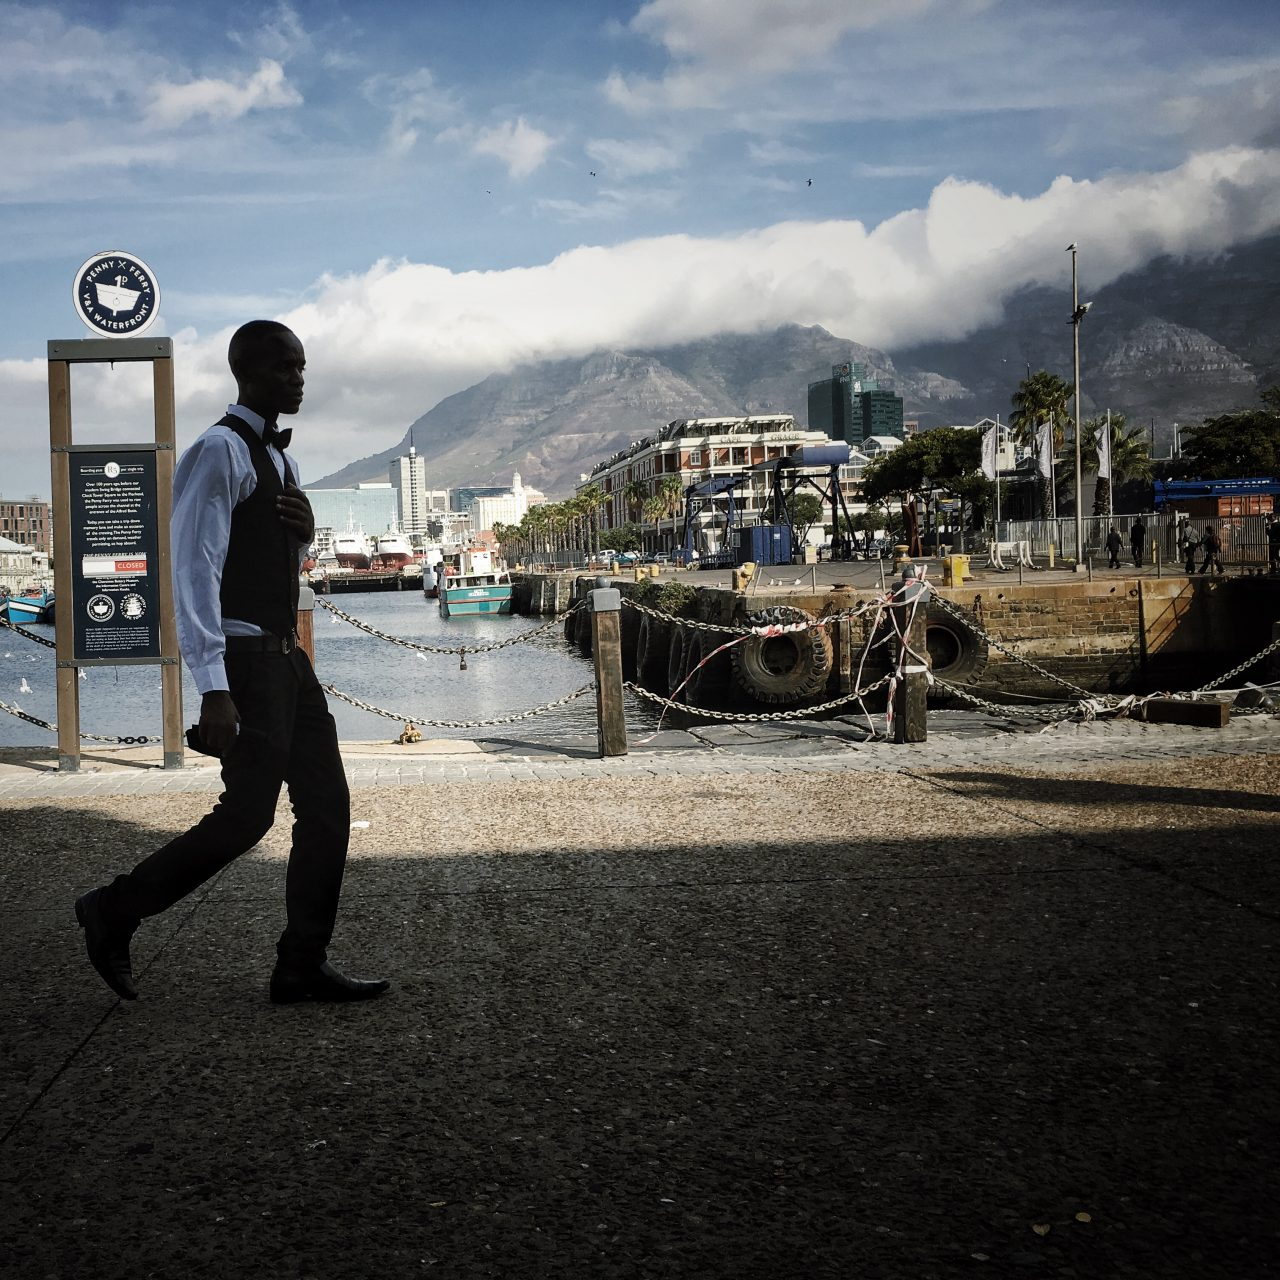 Streetphotography South Africa 7